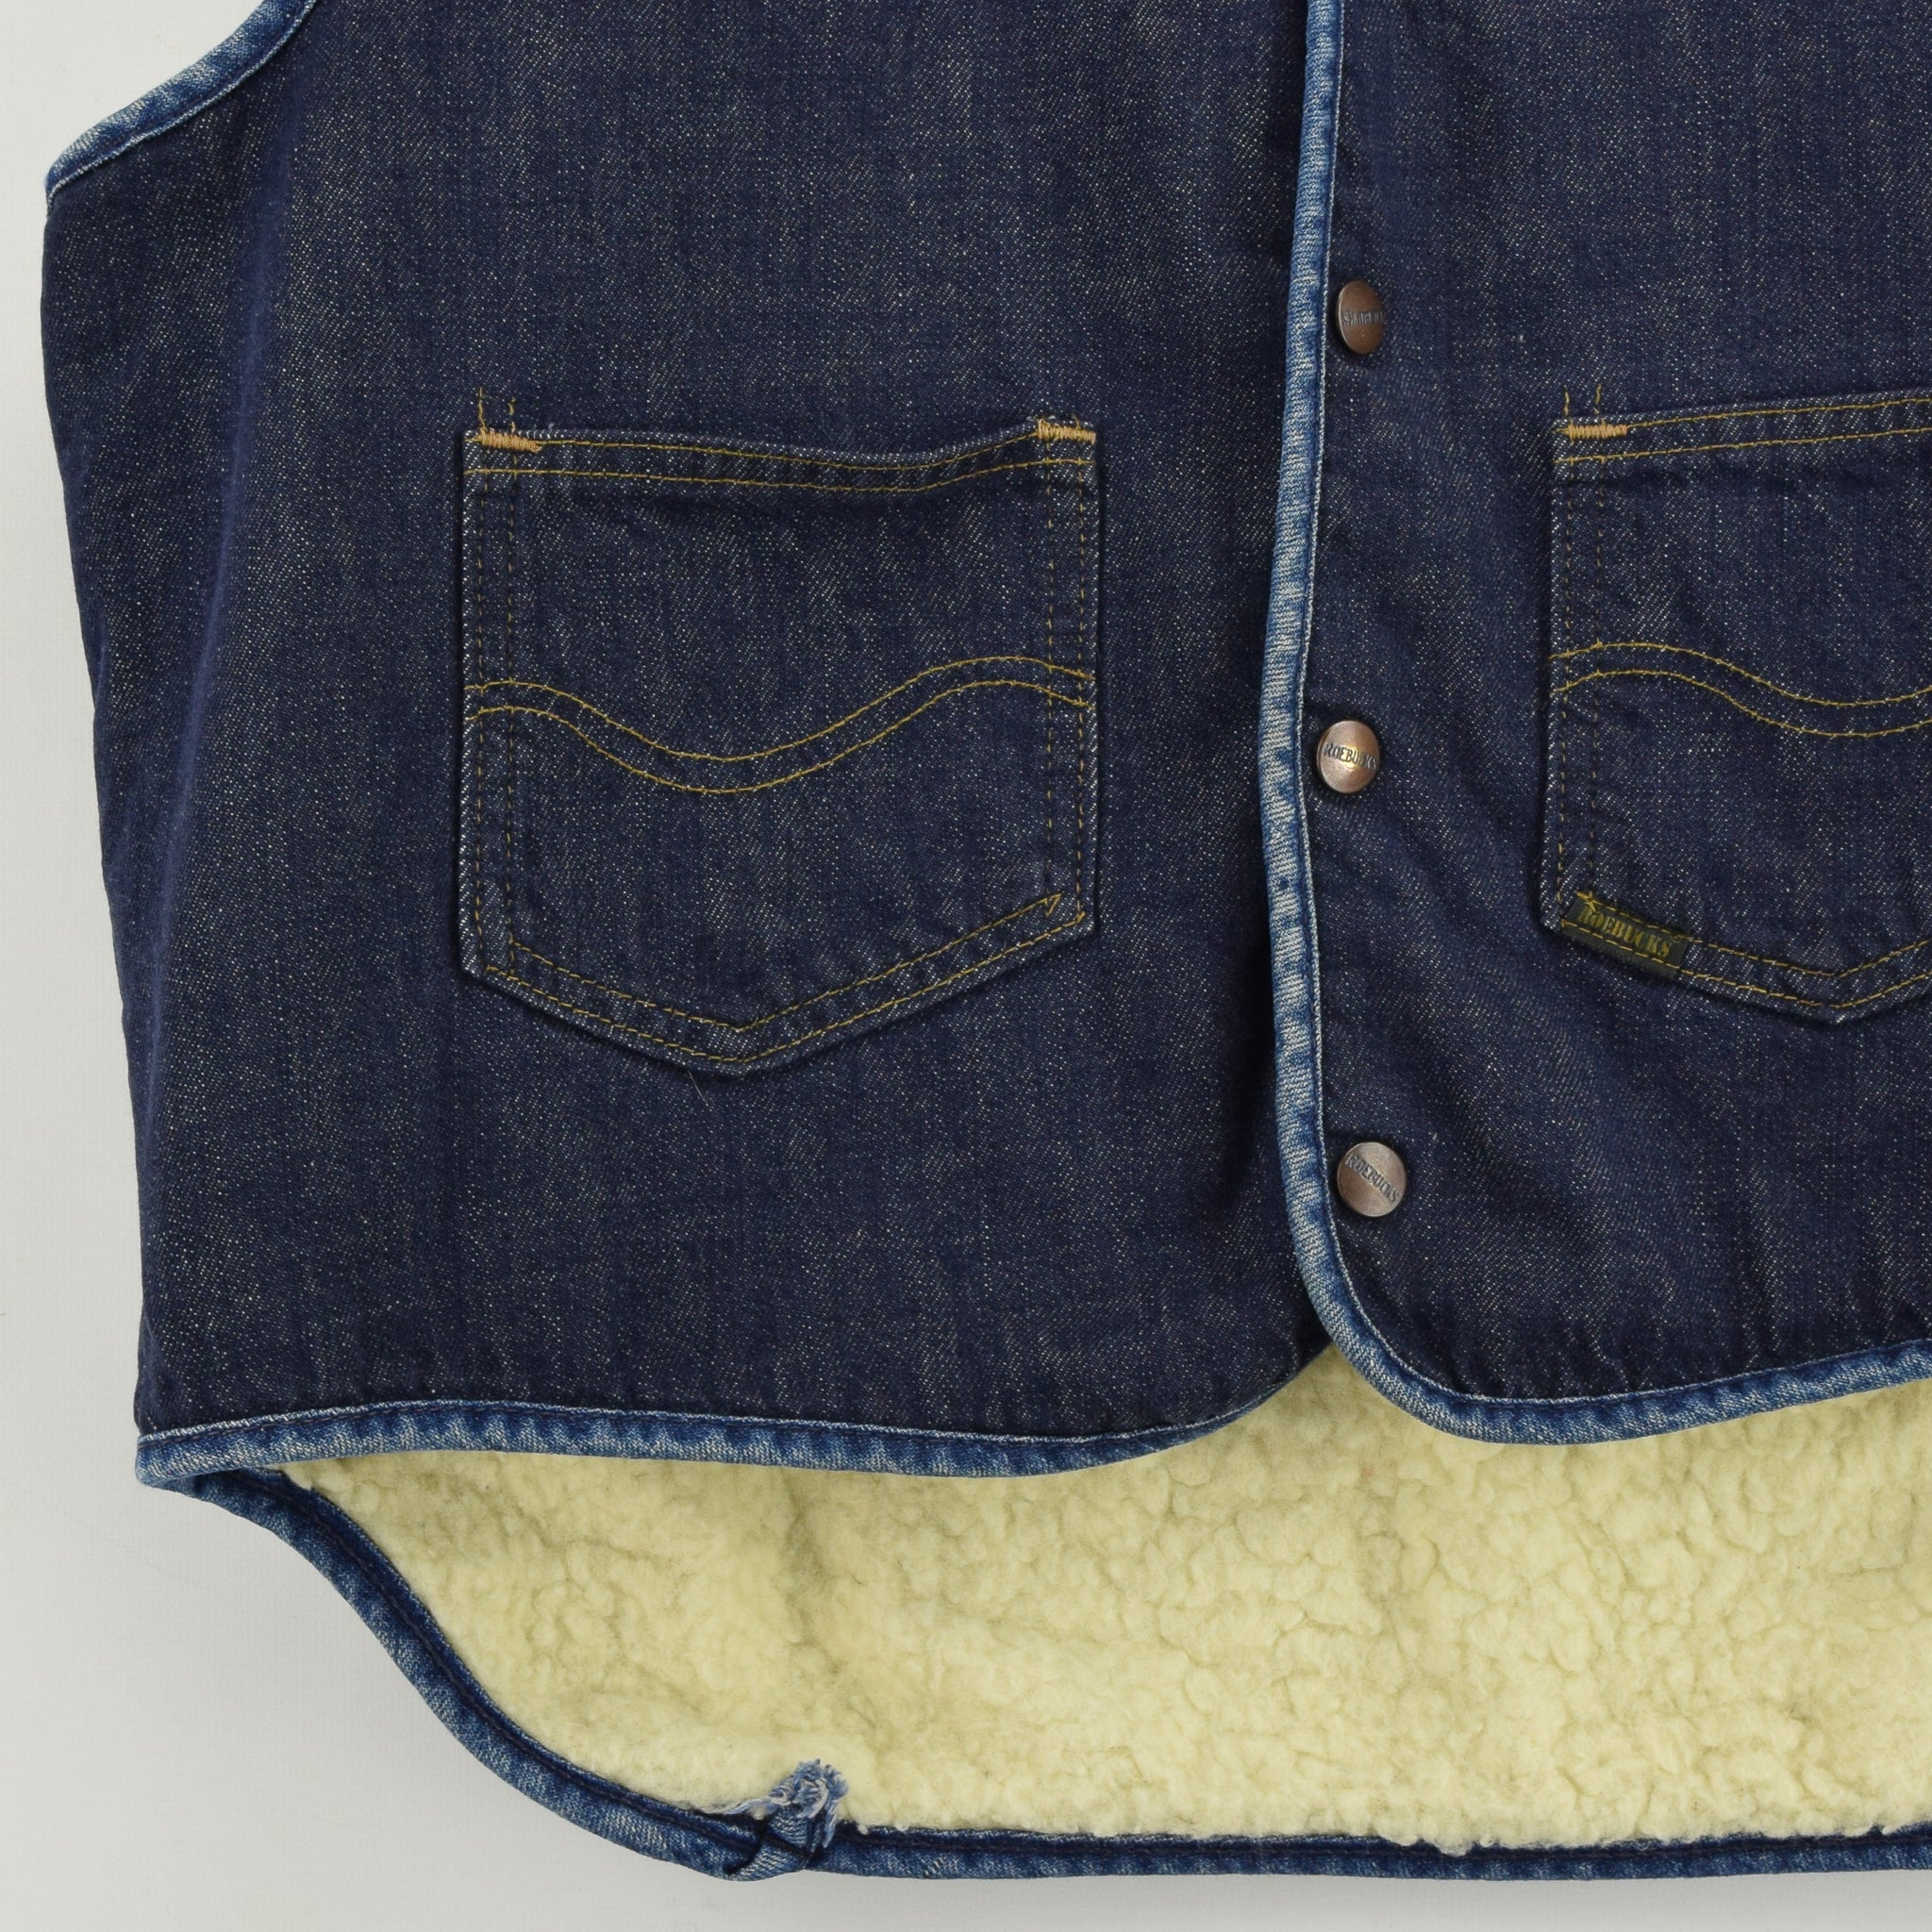 Vintage Sears Roebucks Blue Gilet Cotton Denim Waistcoat Vest Made in USA L front hem